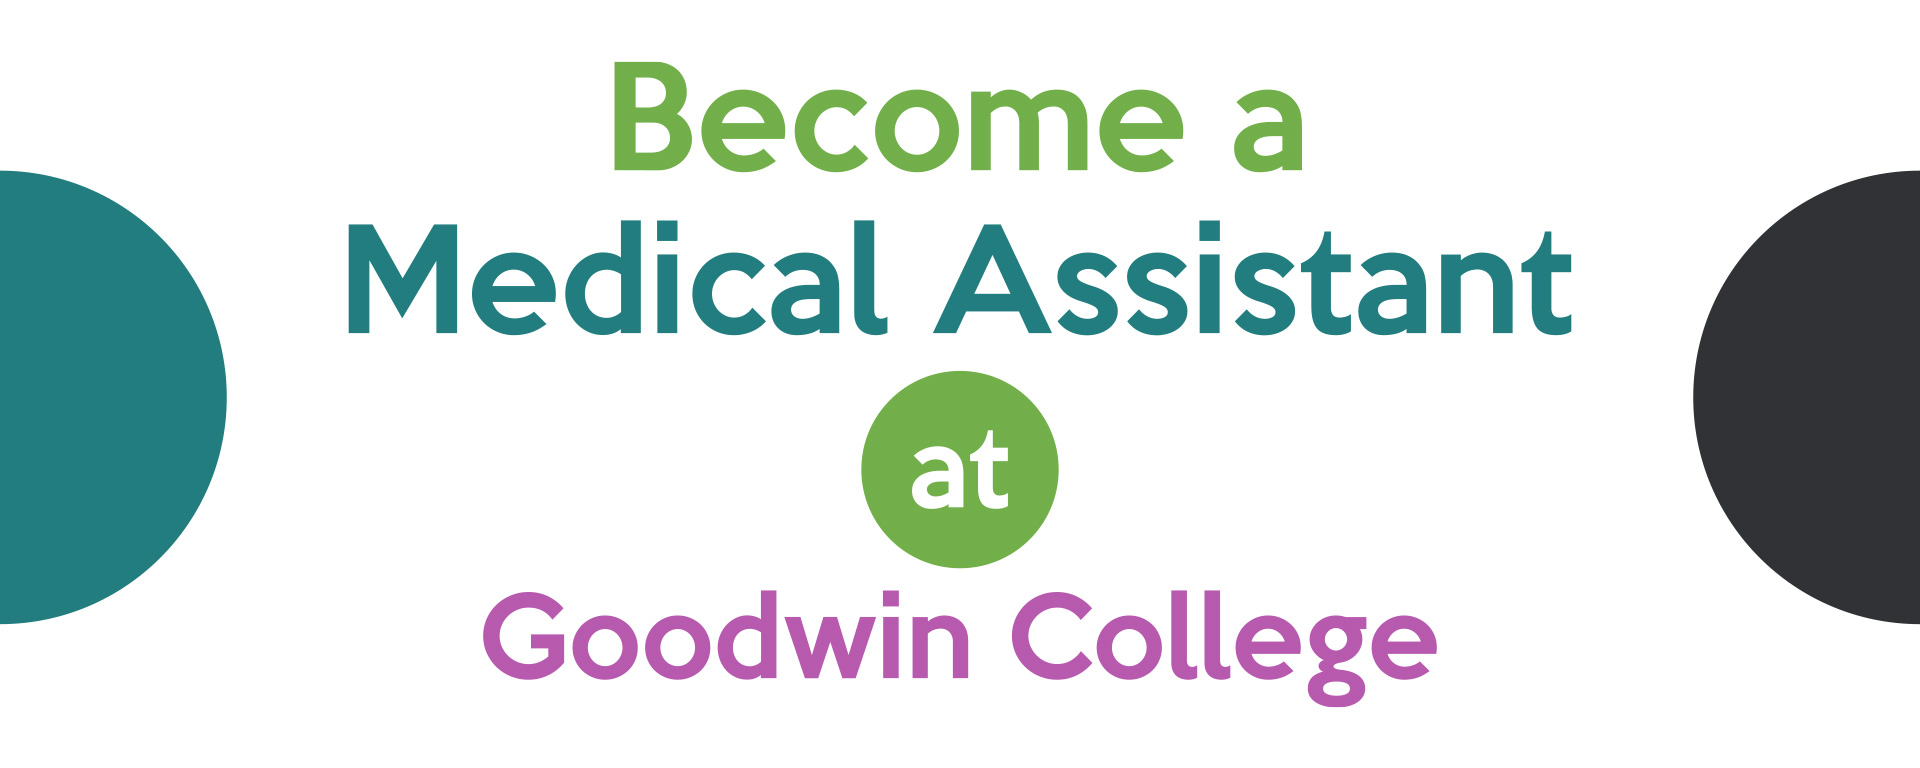 Become a Medical Assistant at Goodwin College